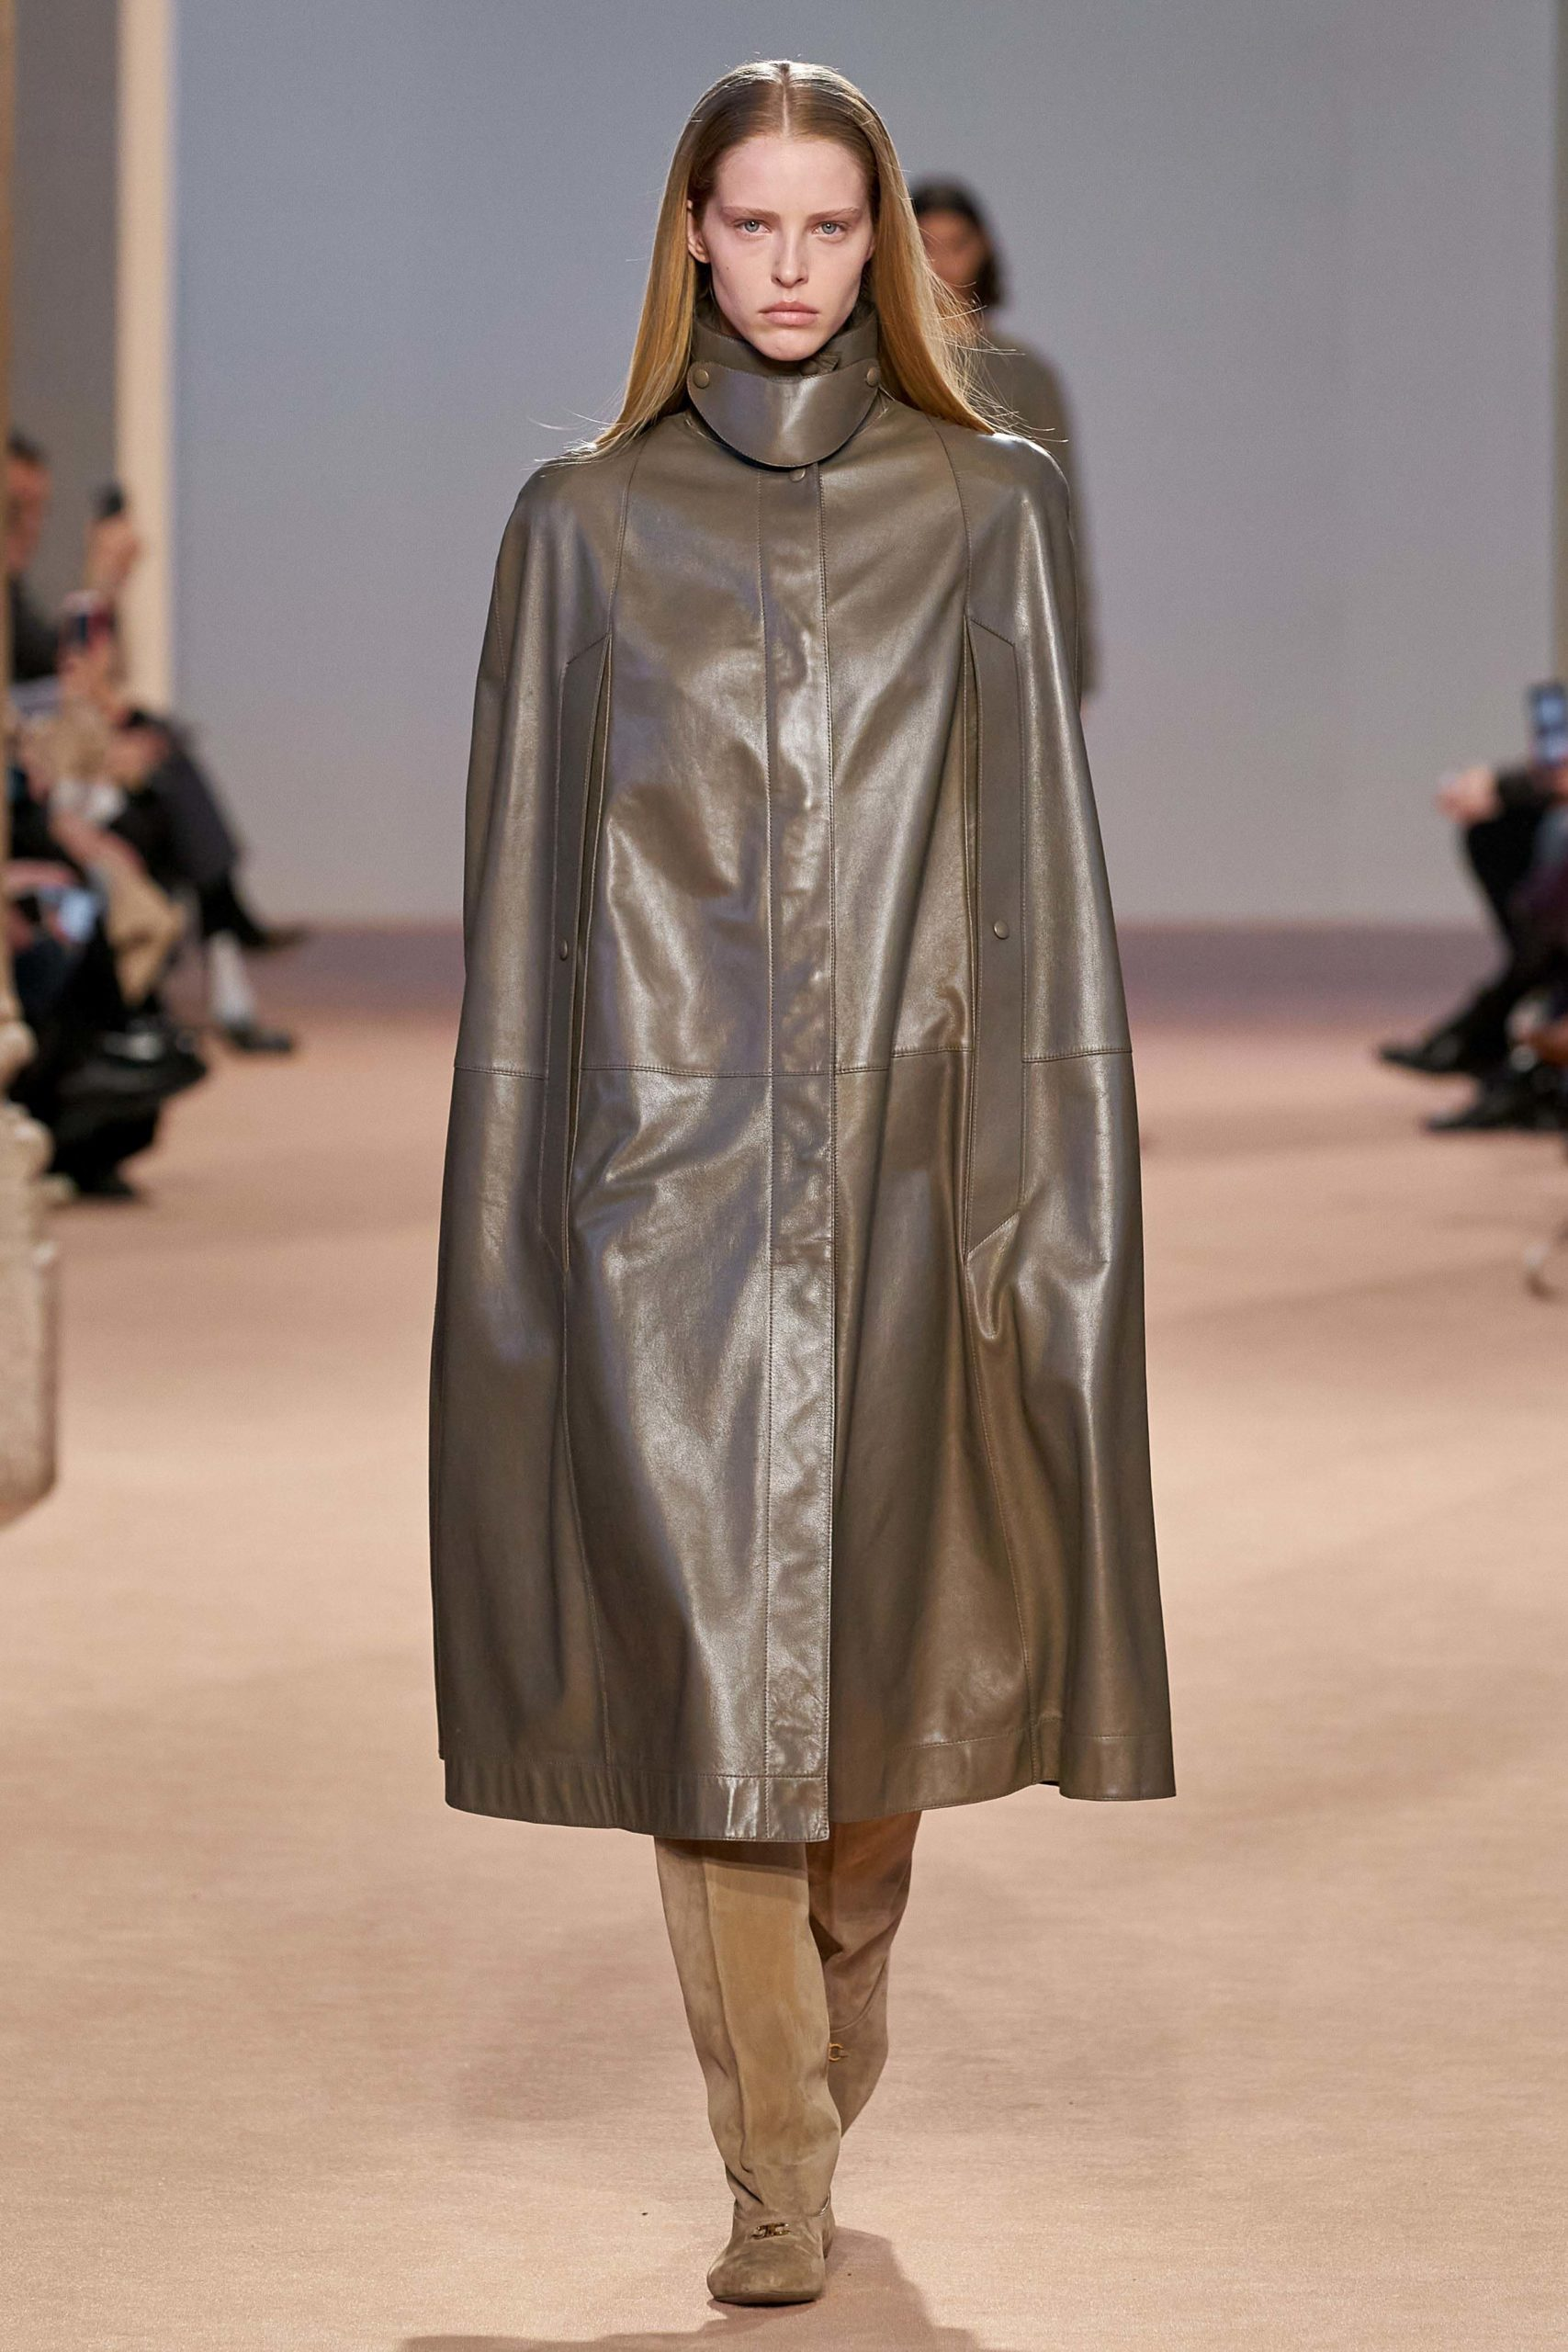 Ferragamo Fall 2020 trends runway coverage Ready To Wear Vogue capes with gloves